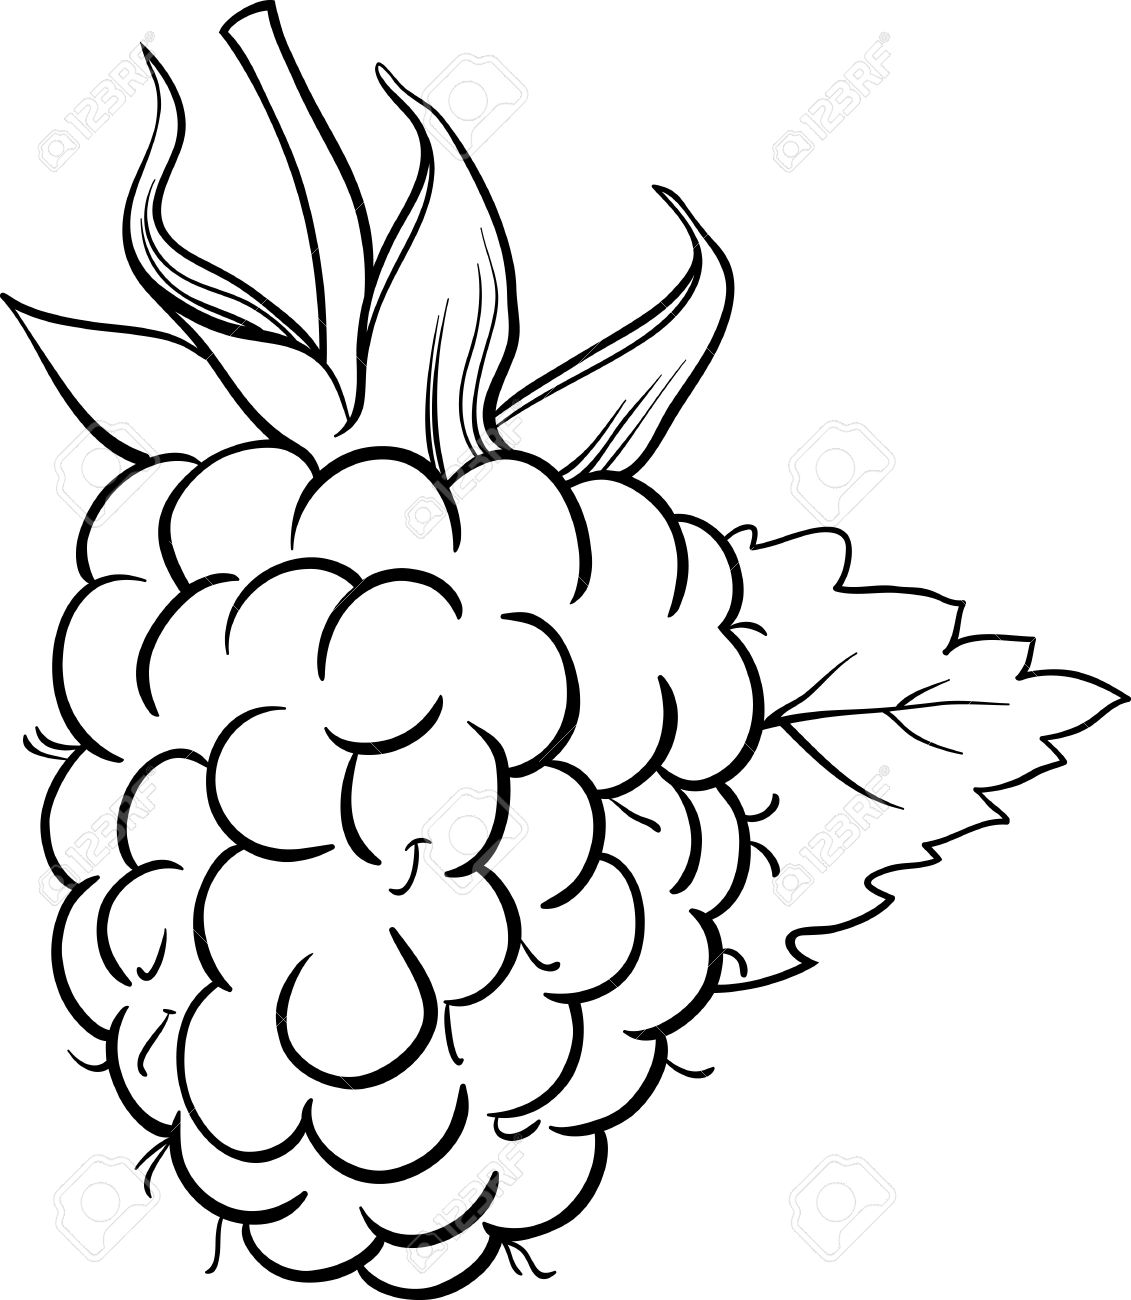 Black And White Cartoon Illustration Of Raspberry Berry Fruit